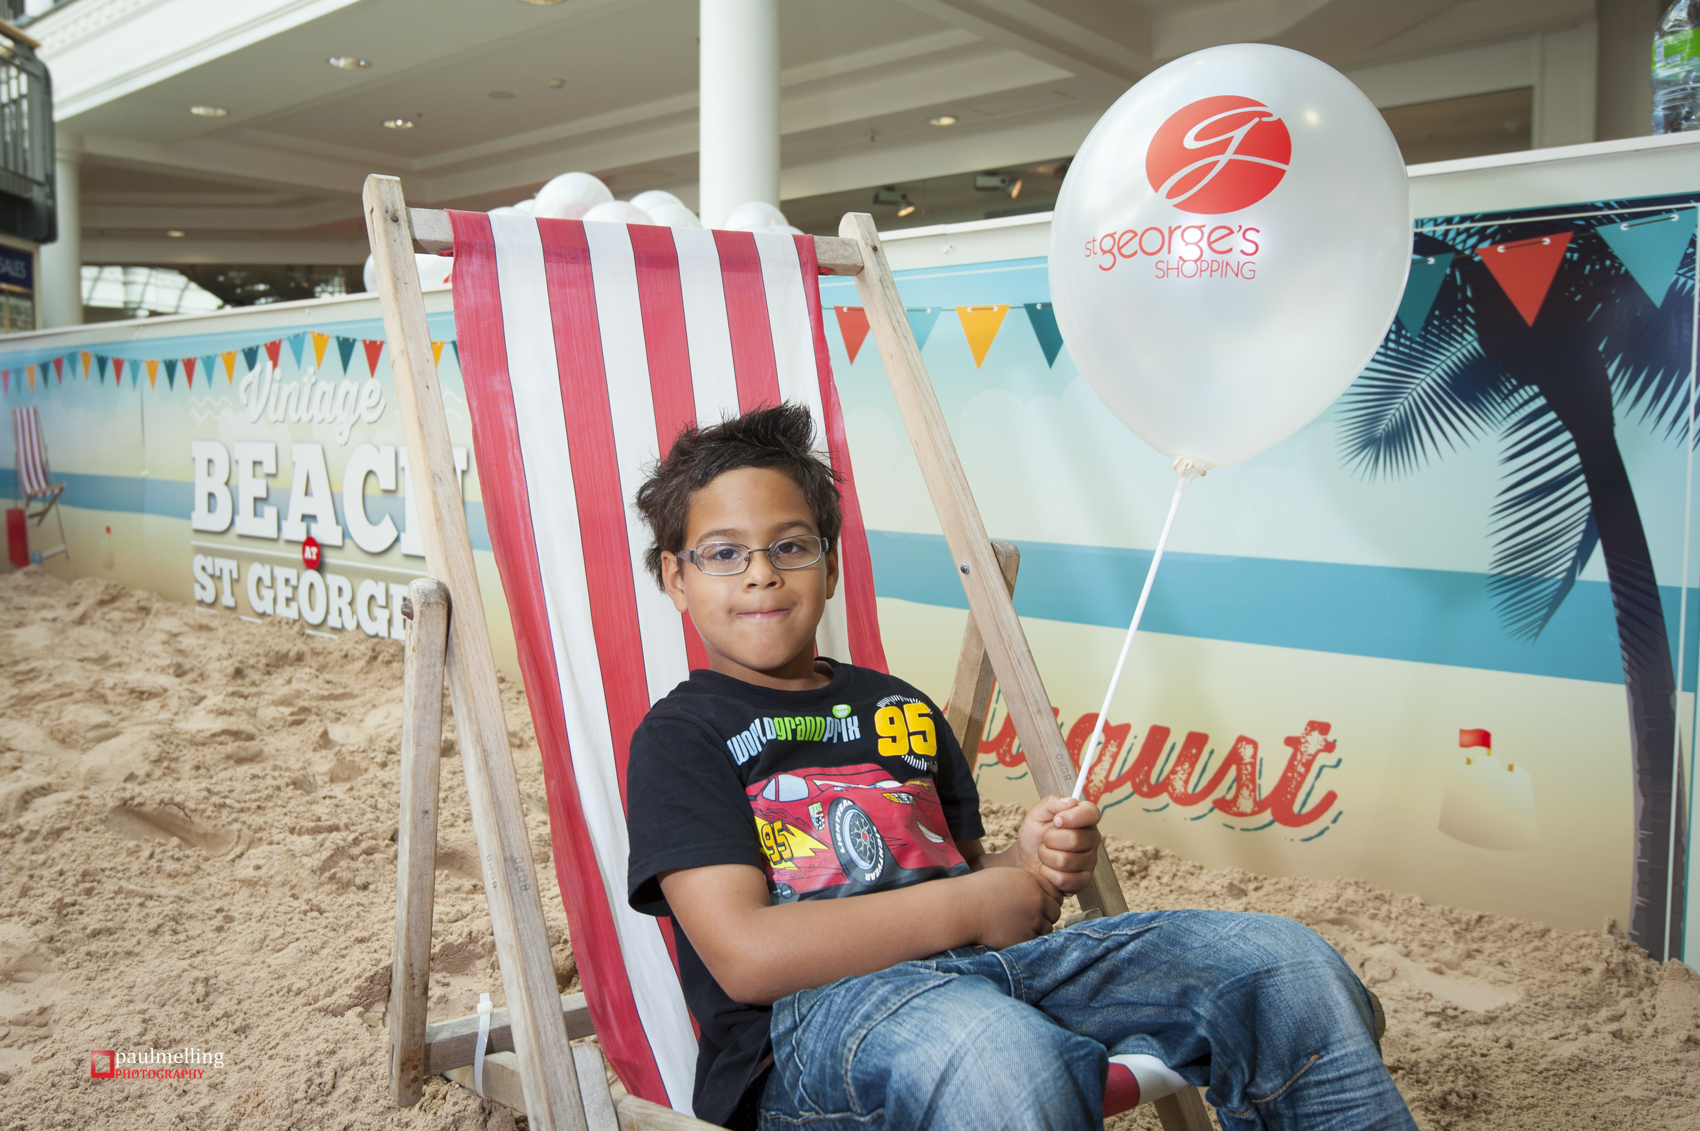 Eduardo was the first visitor to the new beach